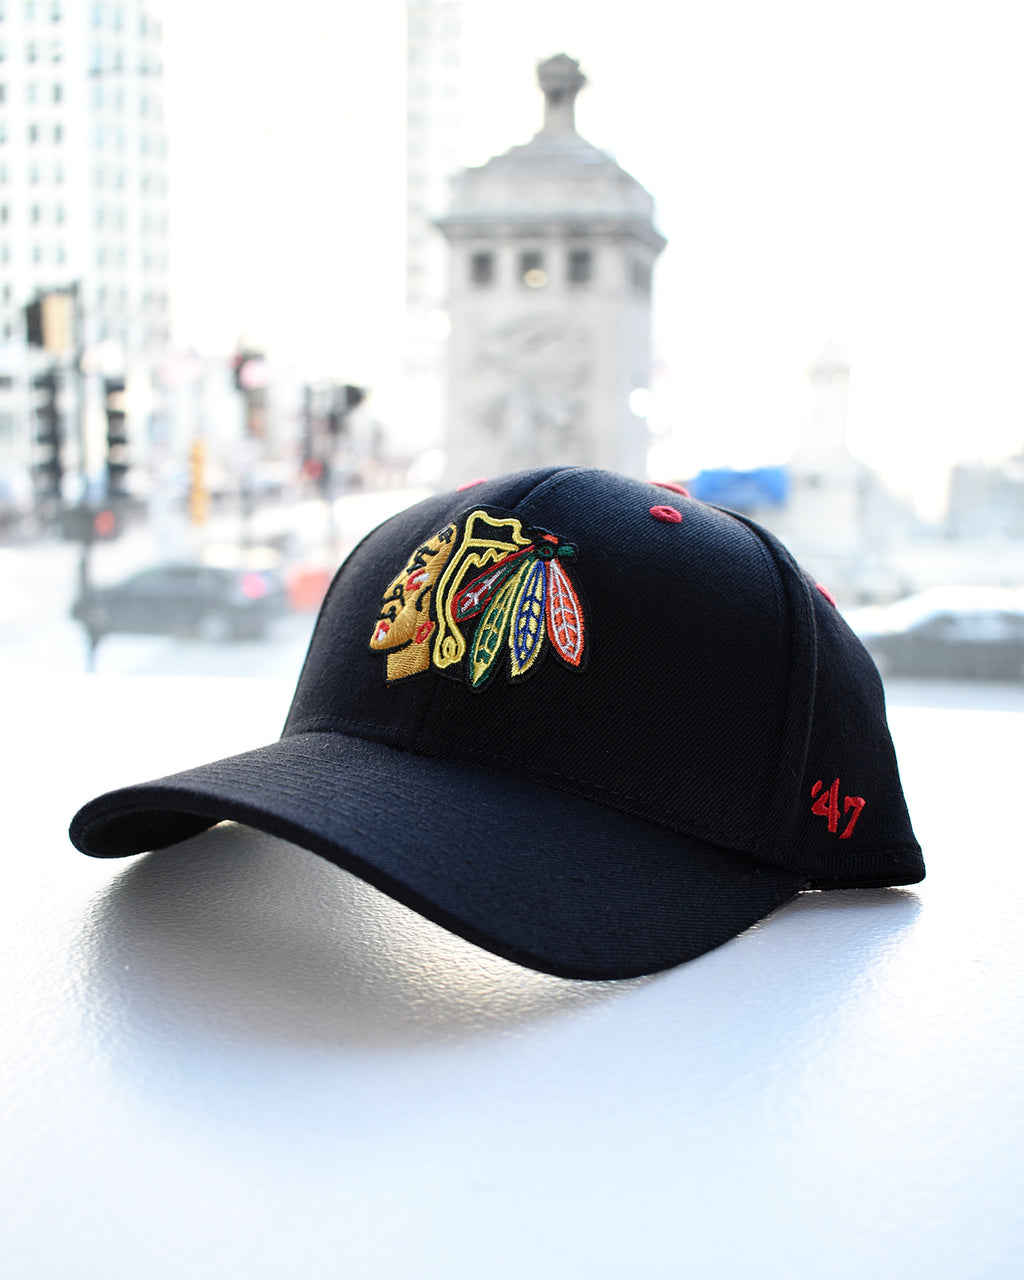 '47 Black Kick-Off Contender Cap